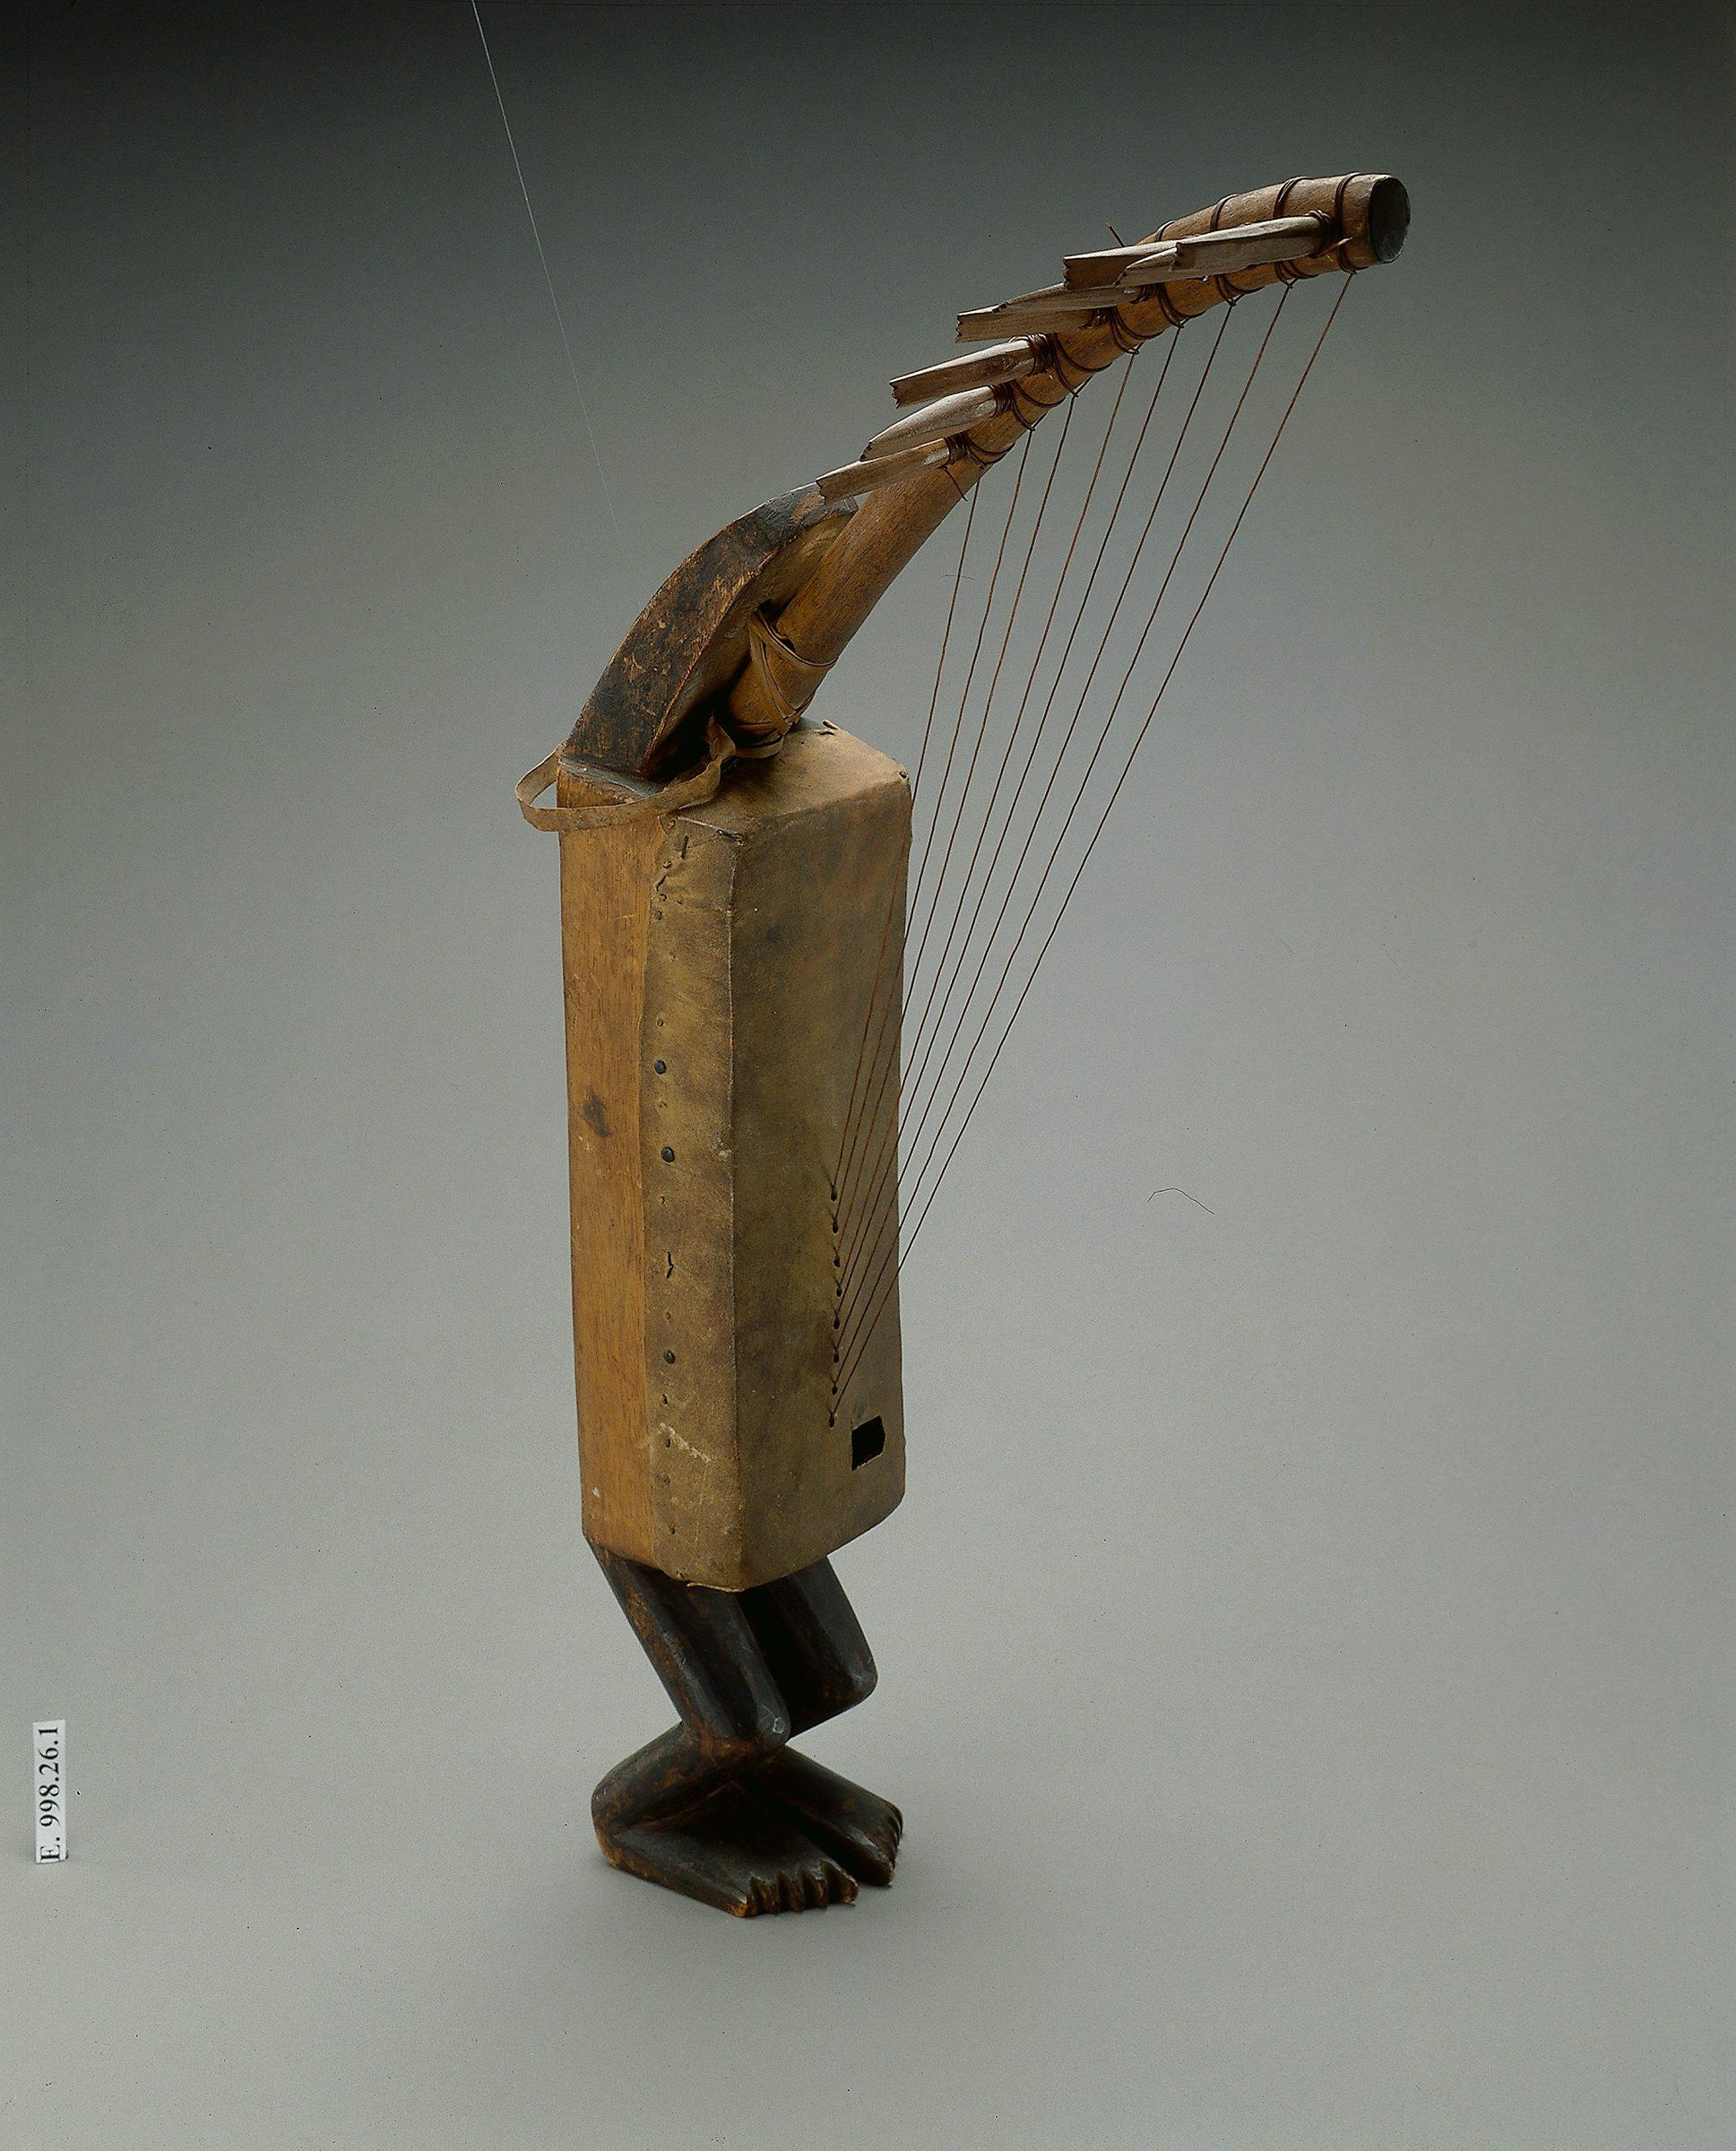 Harpe Ngombi, Gabon, Photo : Thierry Ollivier